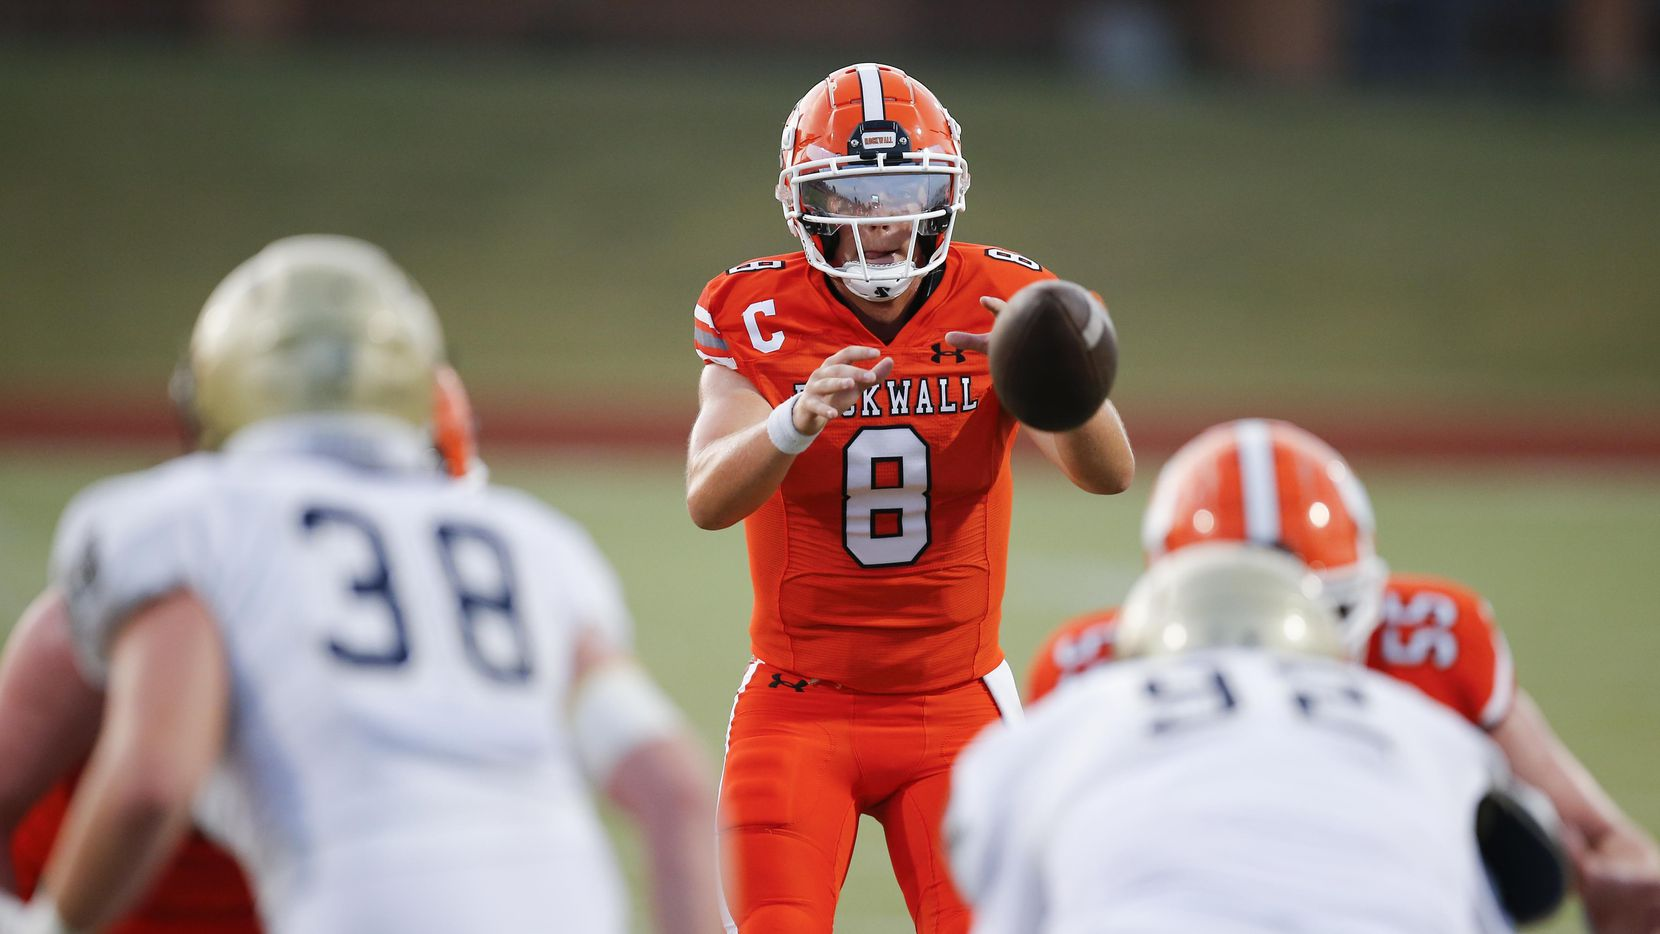 Rockwall senior quarterback Braedyn Locke (8) catches the snap during the first half of a high school football game against Jesuit at Wilkerson-Sanders Stadium in Rockwall, Friday, September 3, 2021.